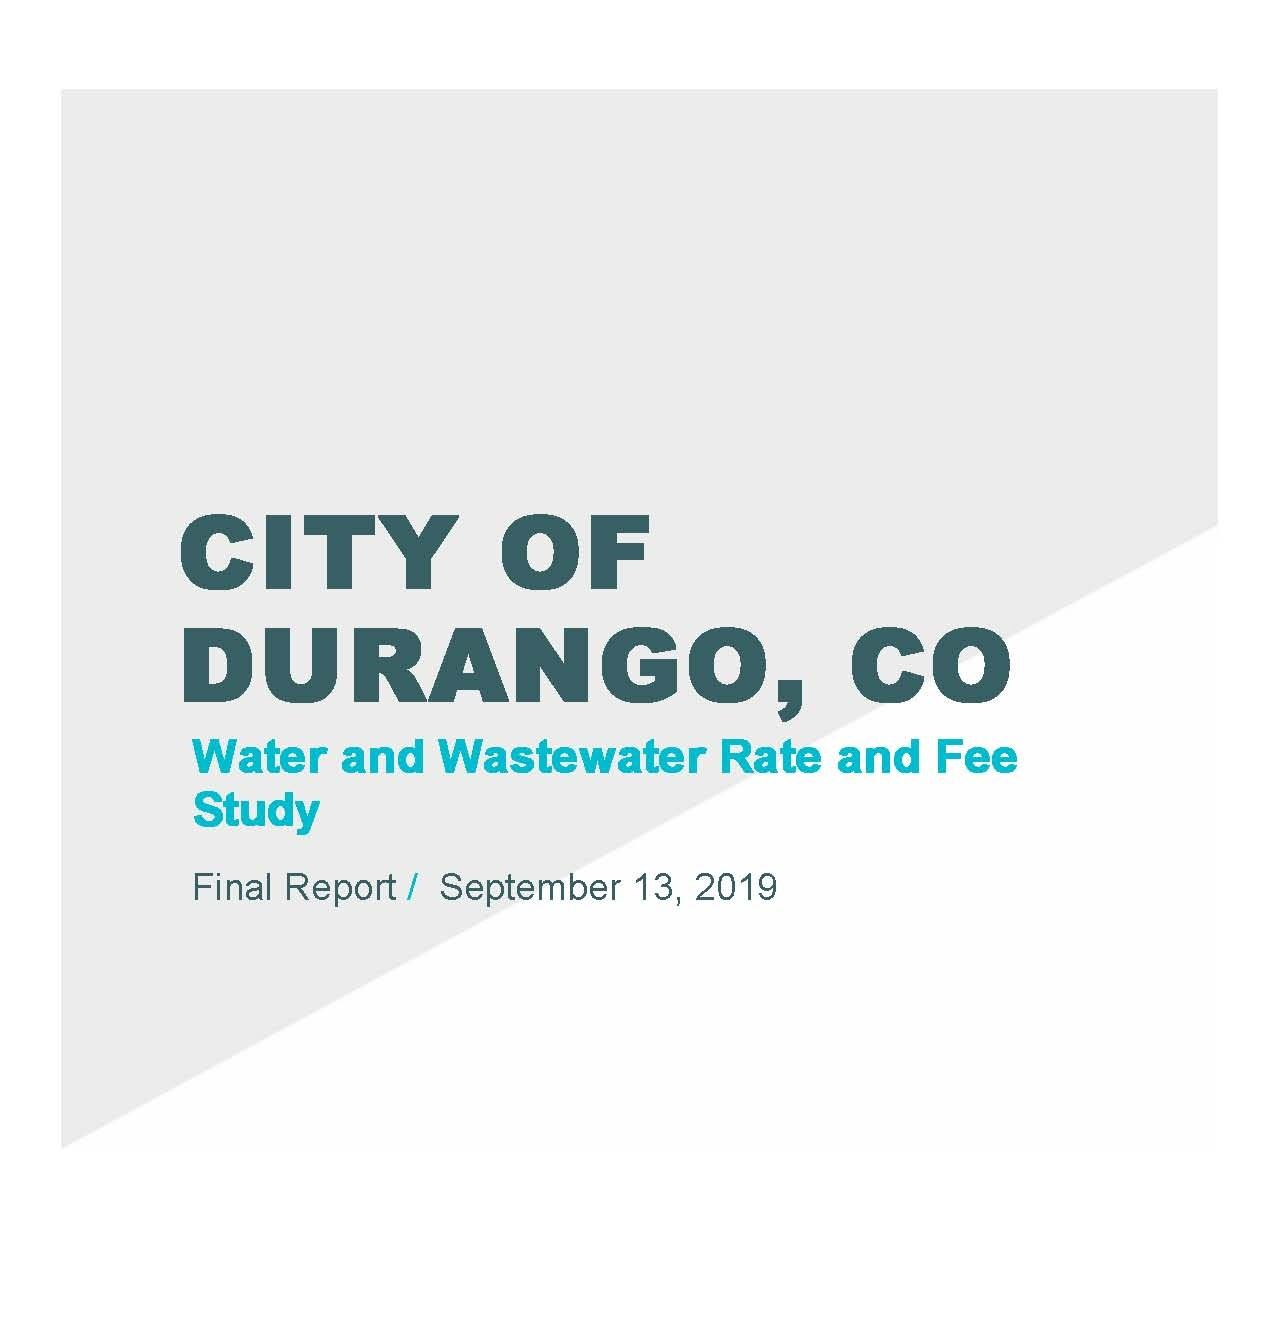 City of Durango Rate and Fee Study 2019 Opens in new window